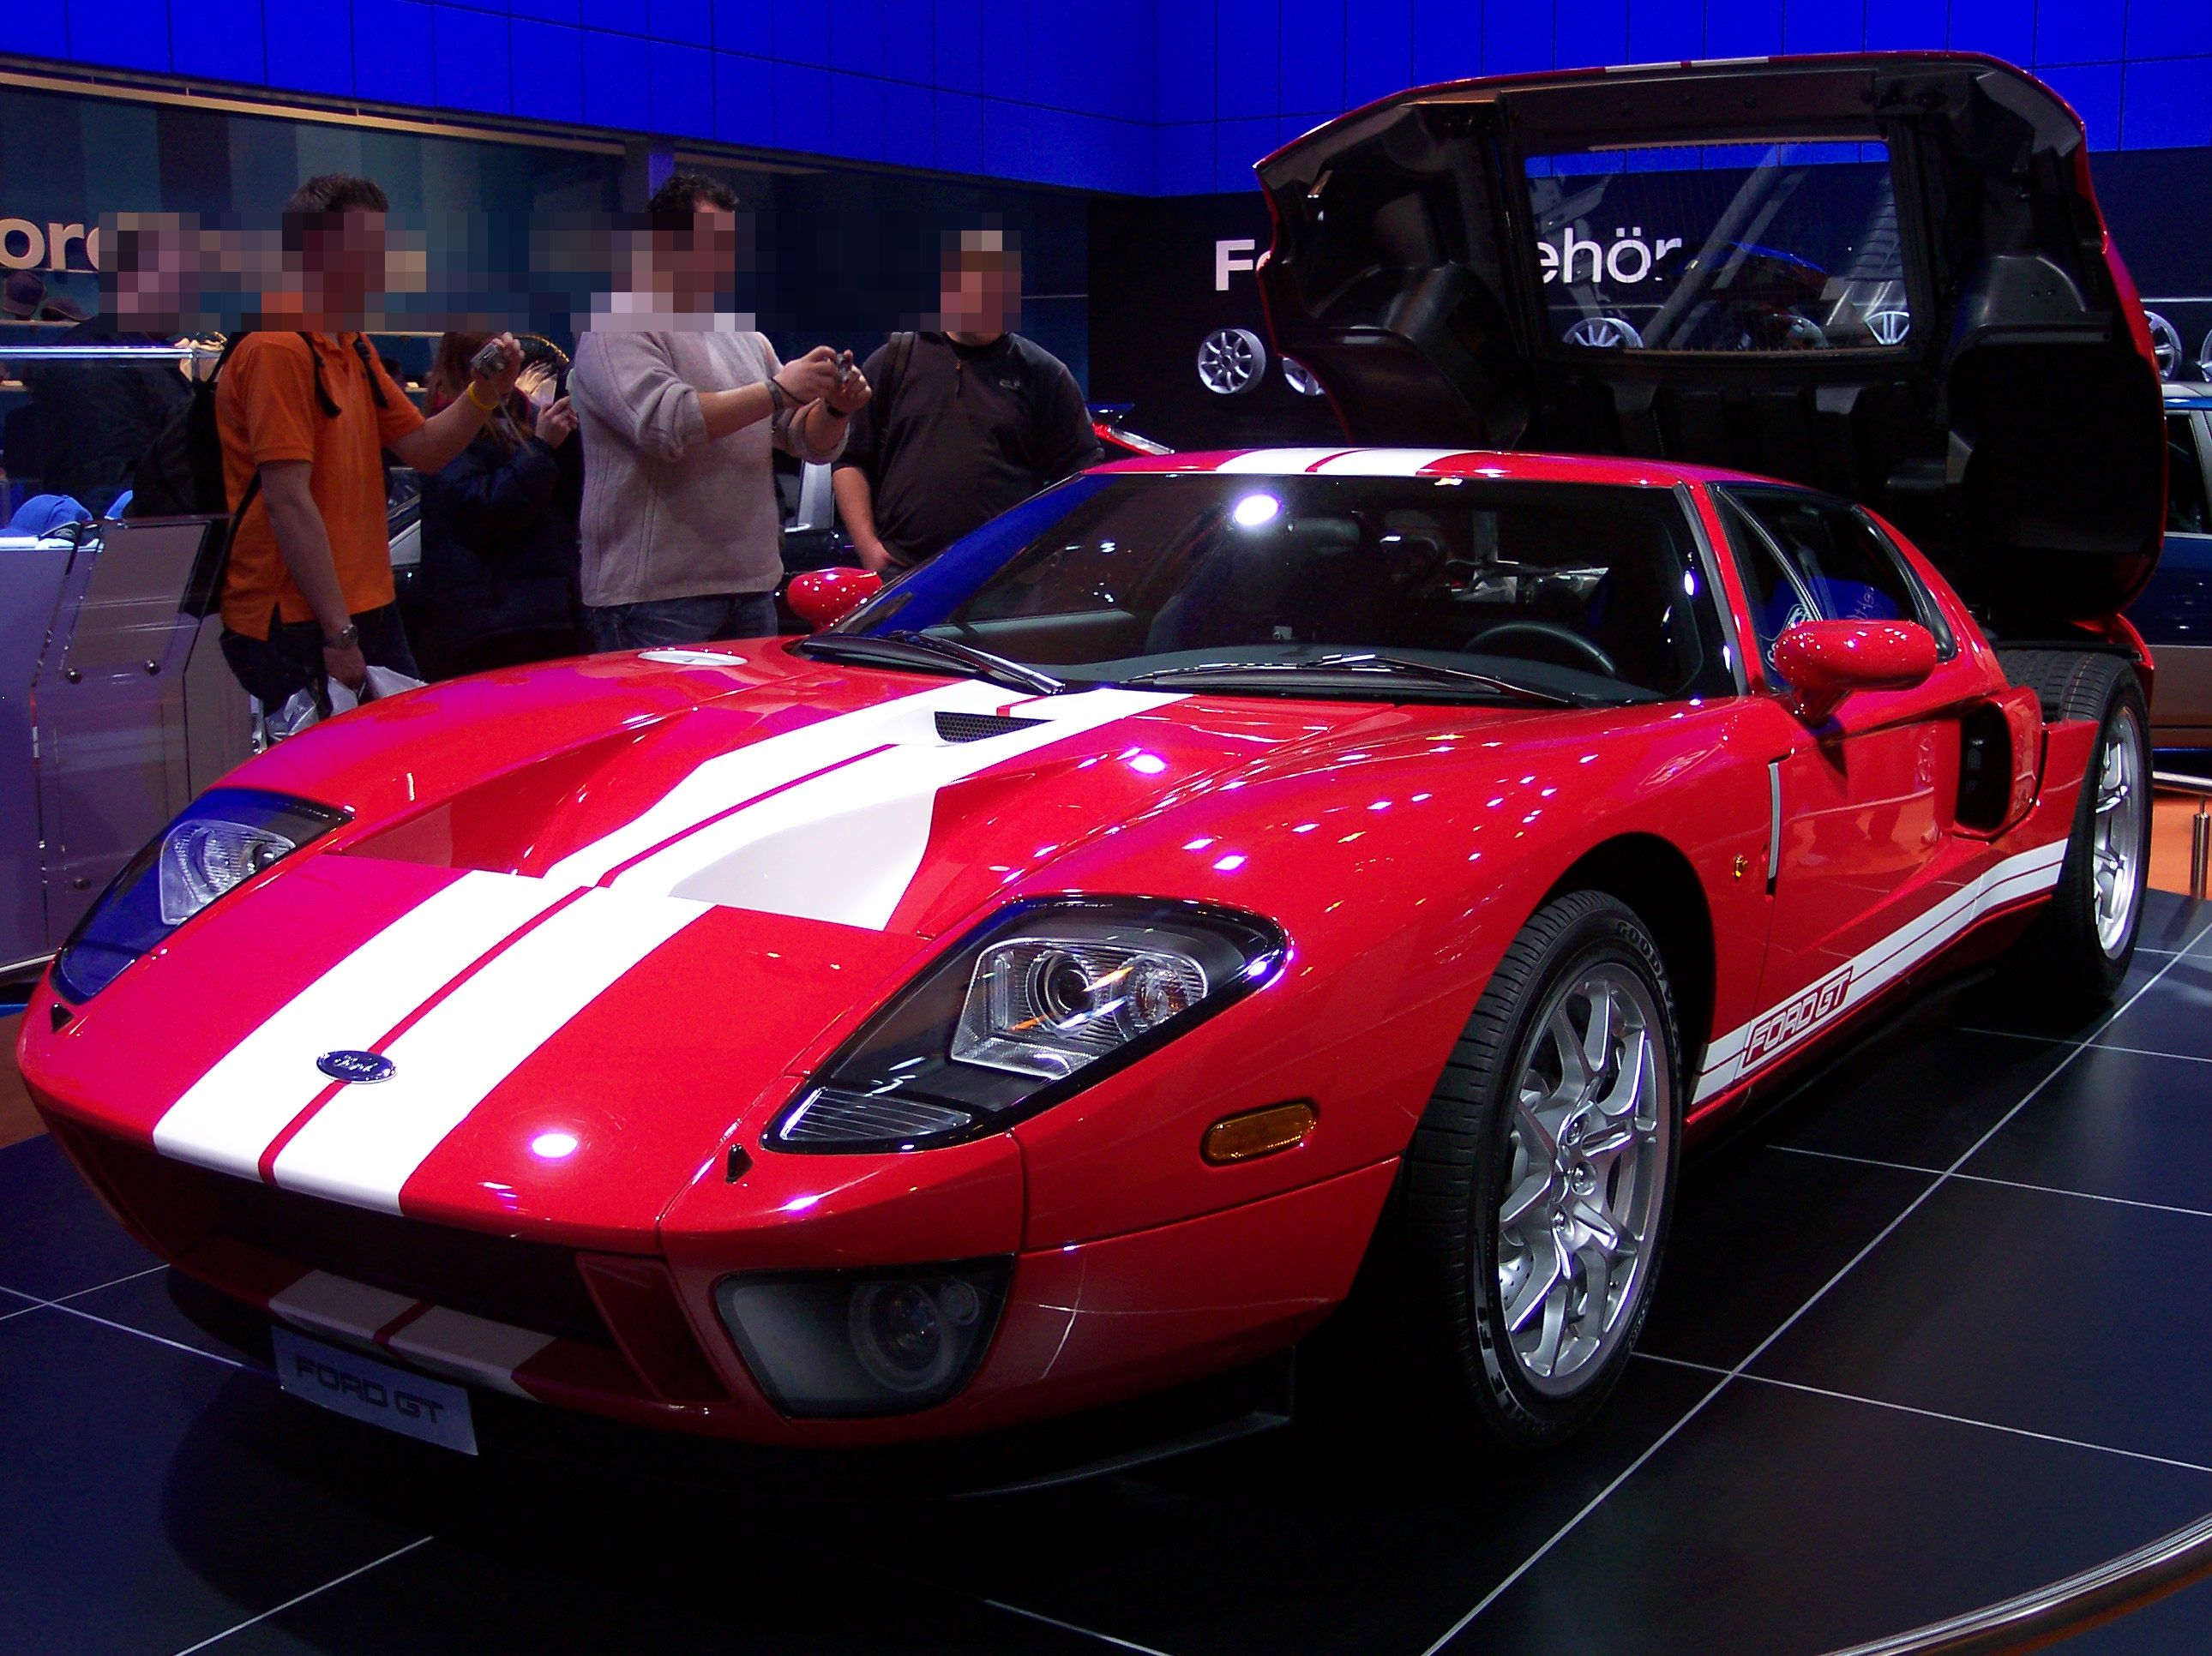 Ford GT red #1